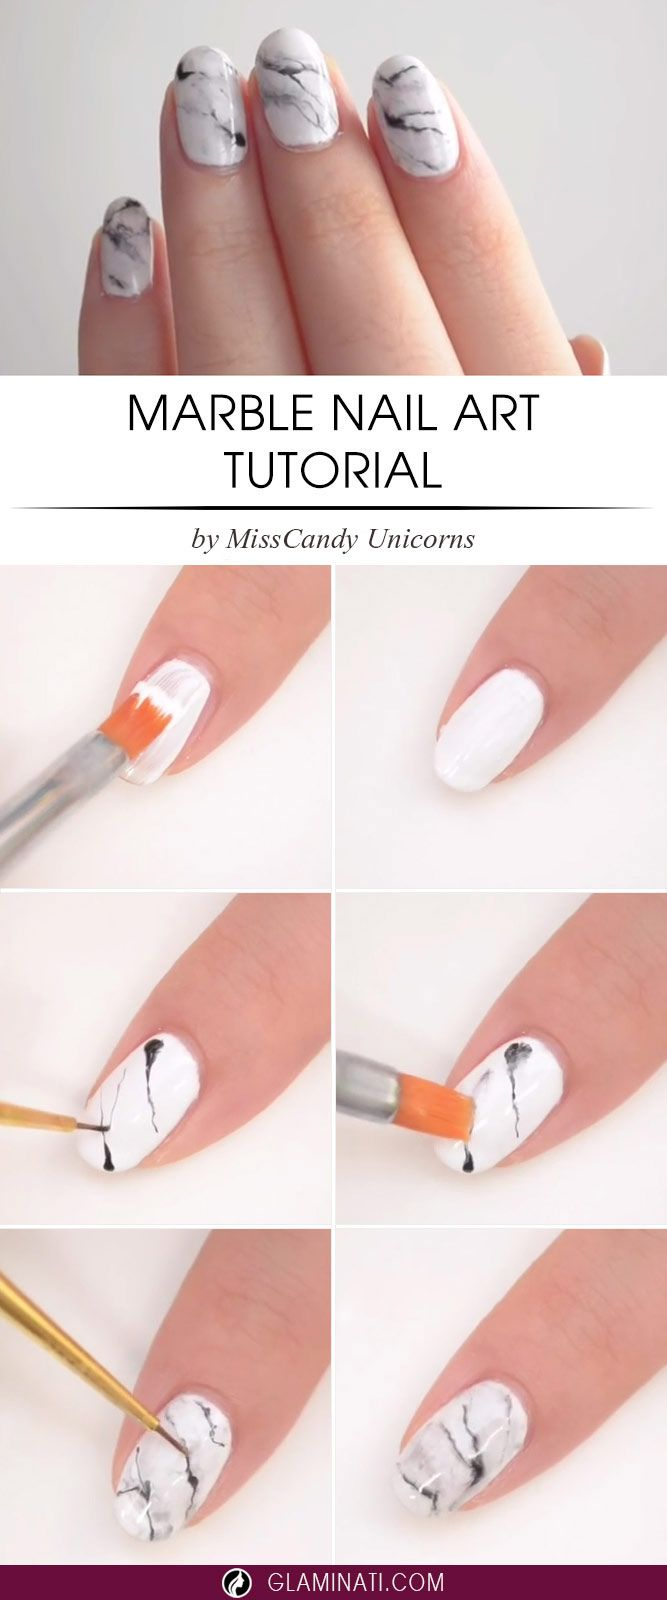 7 Three-Step Easy Nail Designs You Will Absolutely Love | Pinterest ...